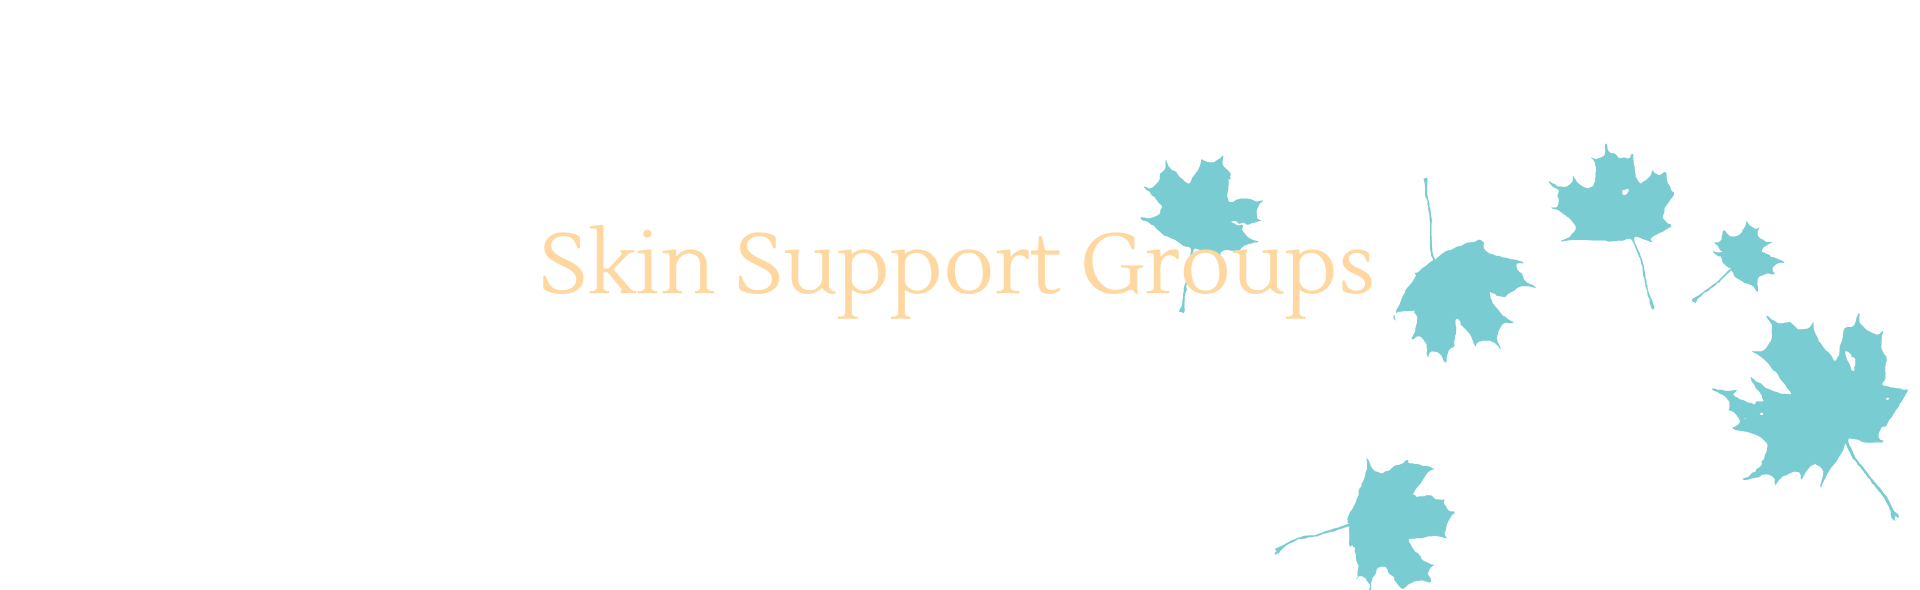 Skin Support graphics